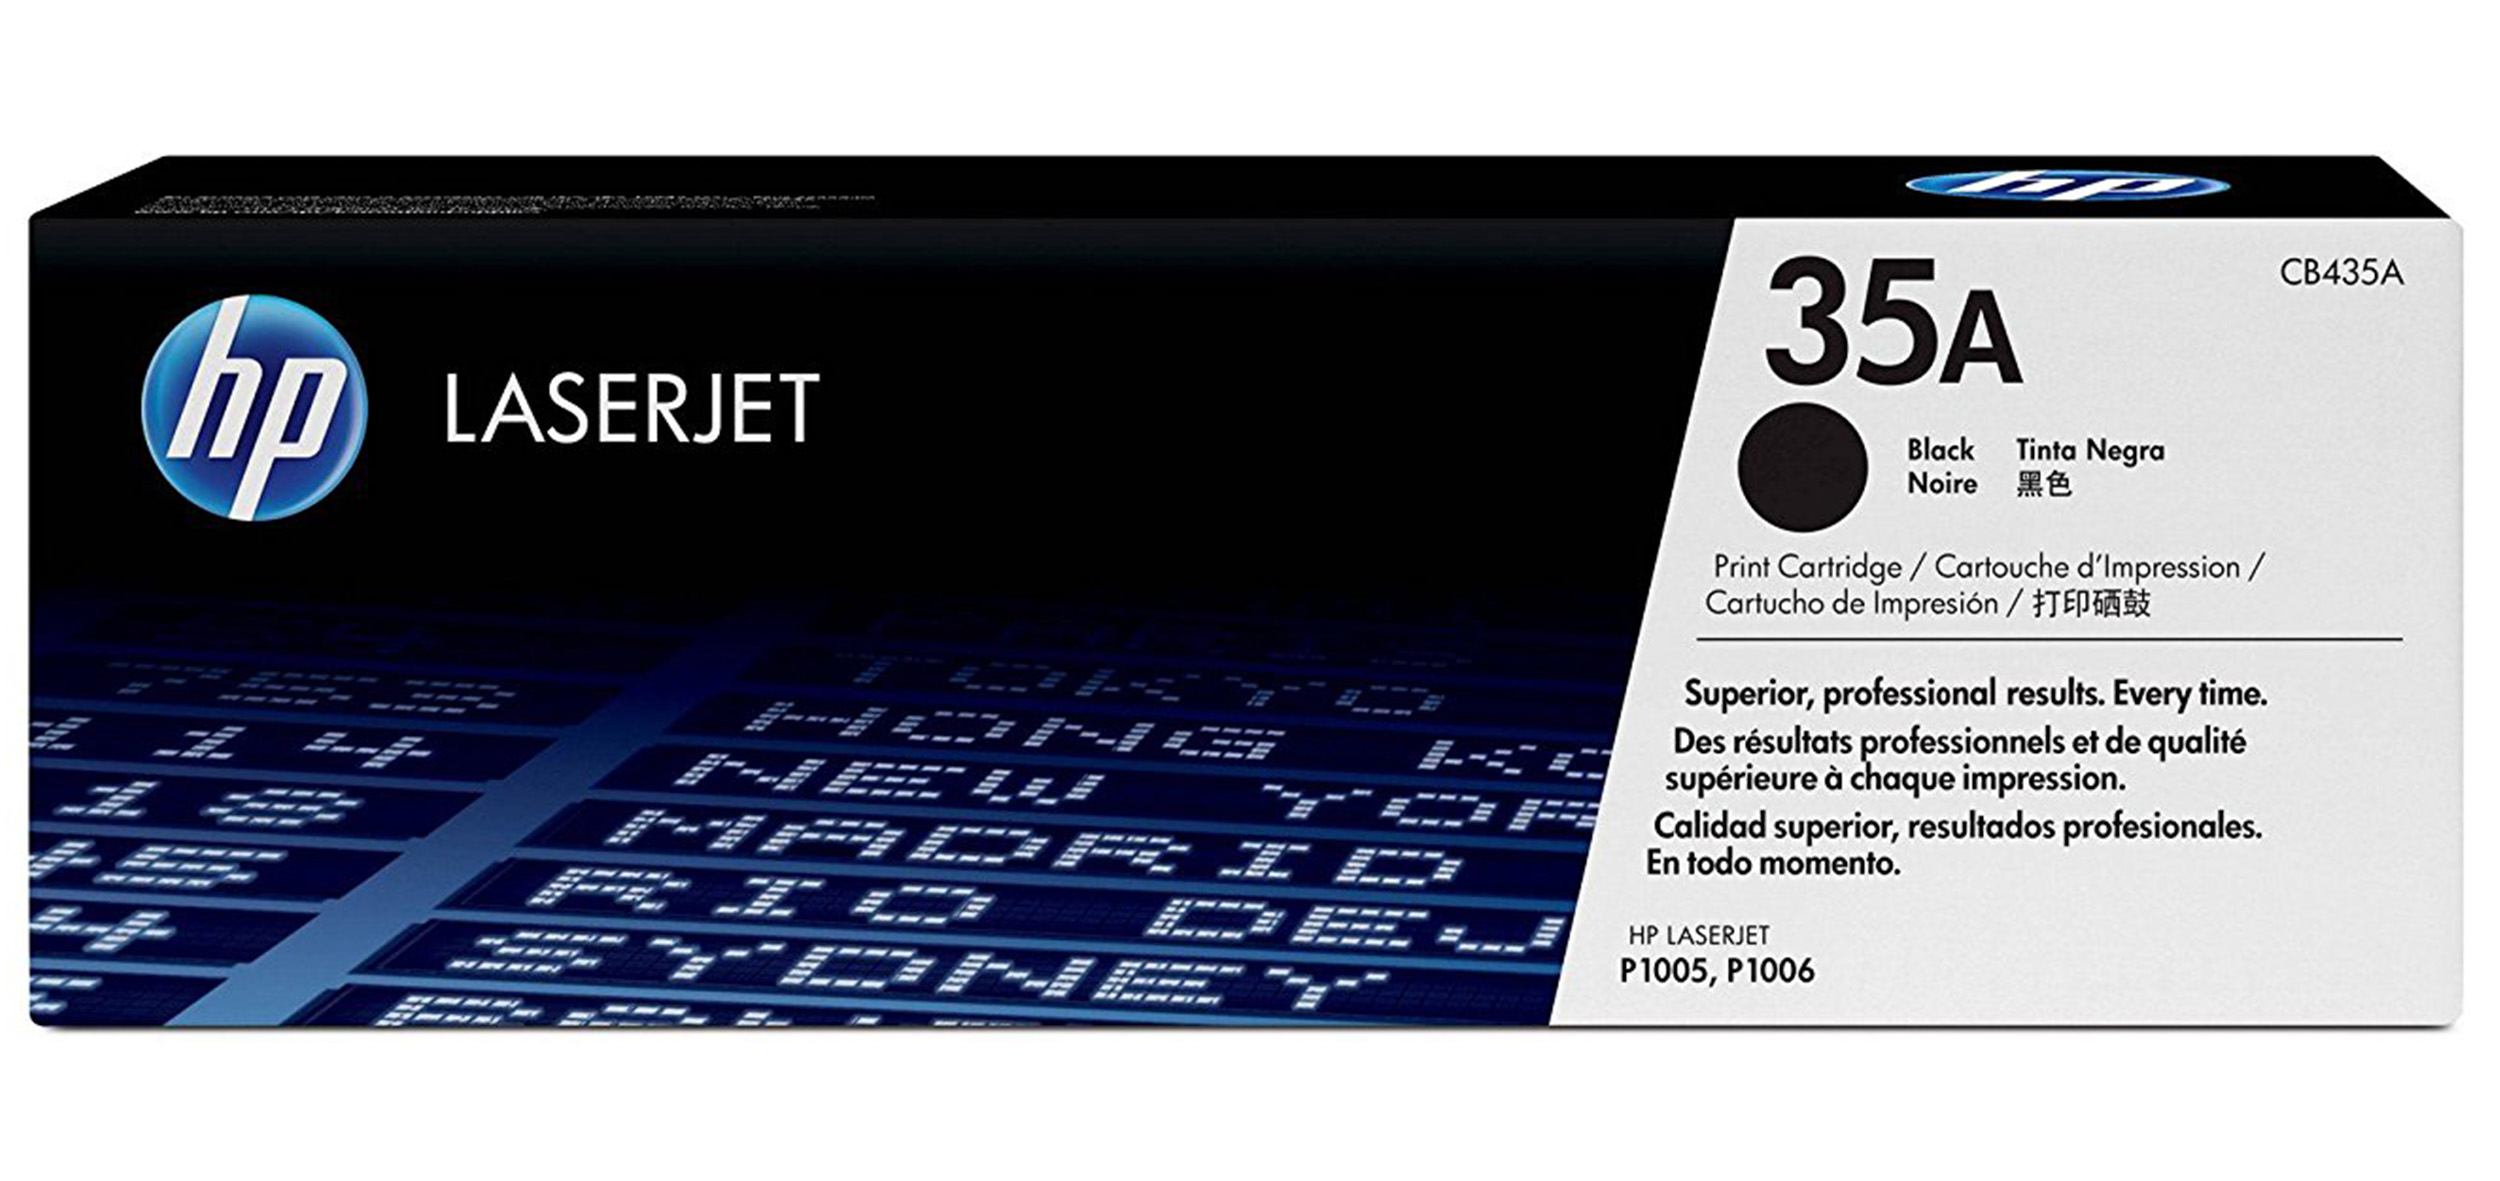 Remanufactured HP CB435A Toner Cartridge Black CB435A - rem01